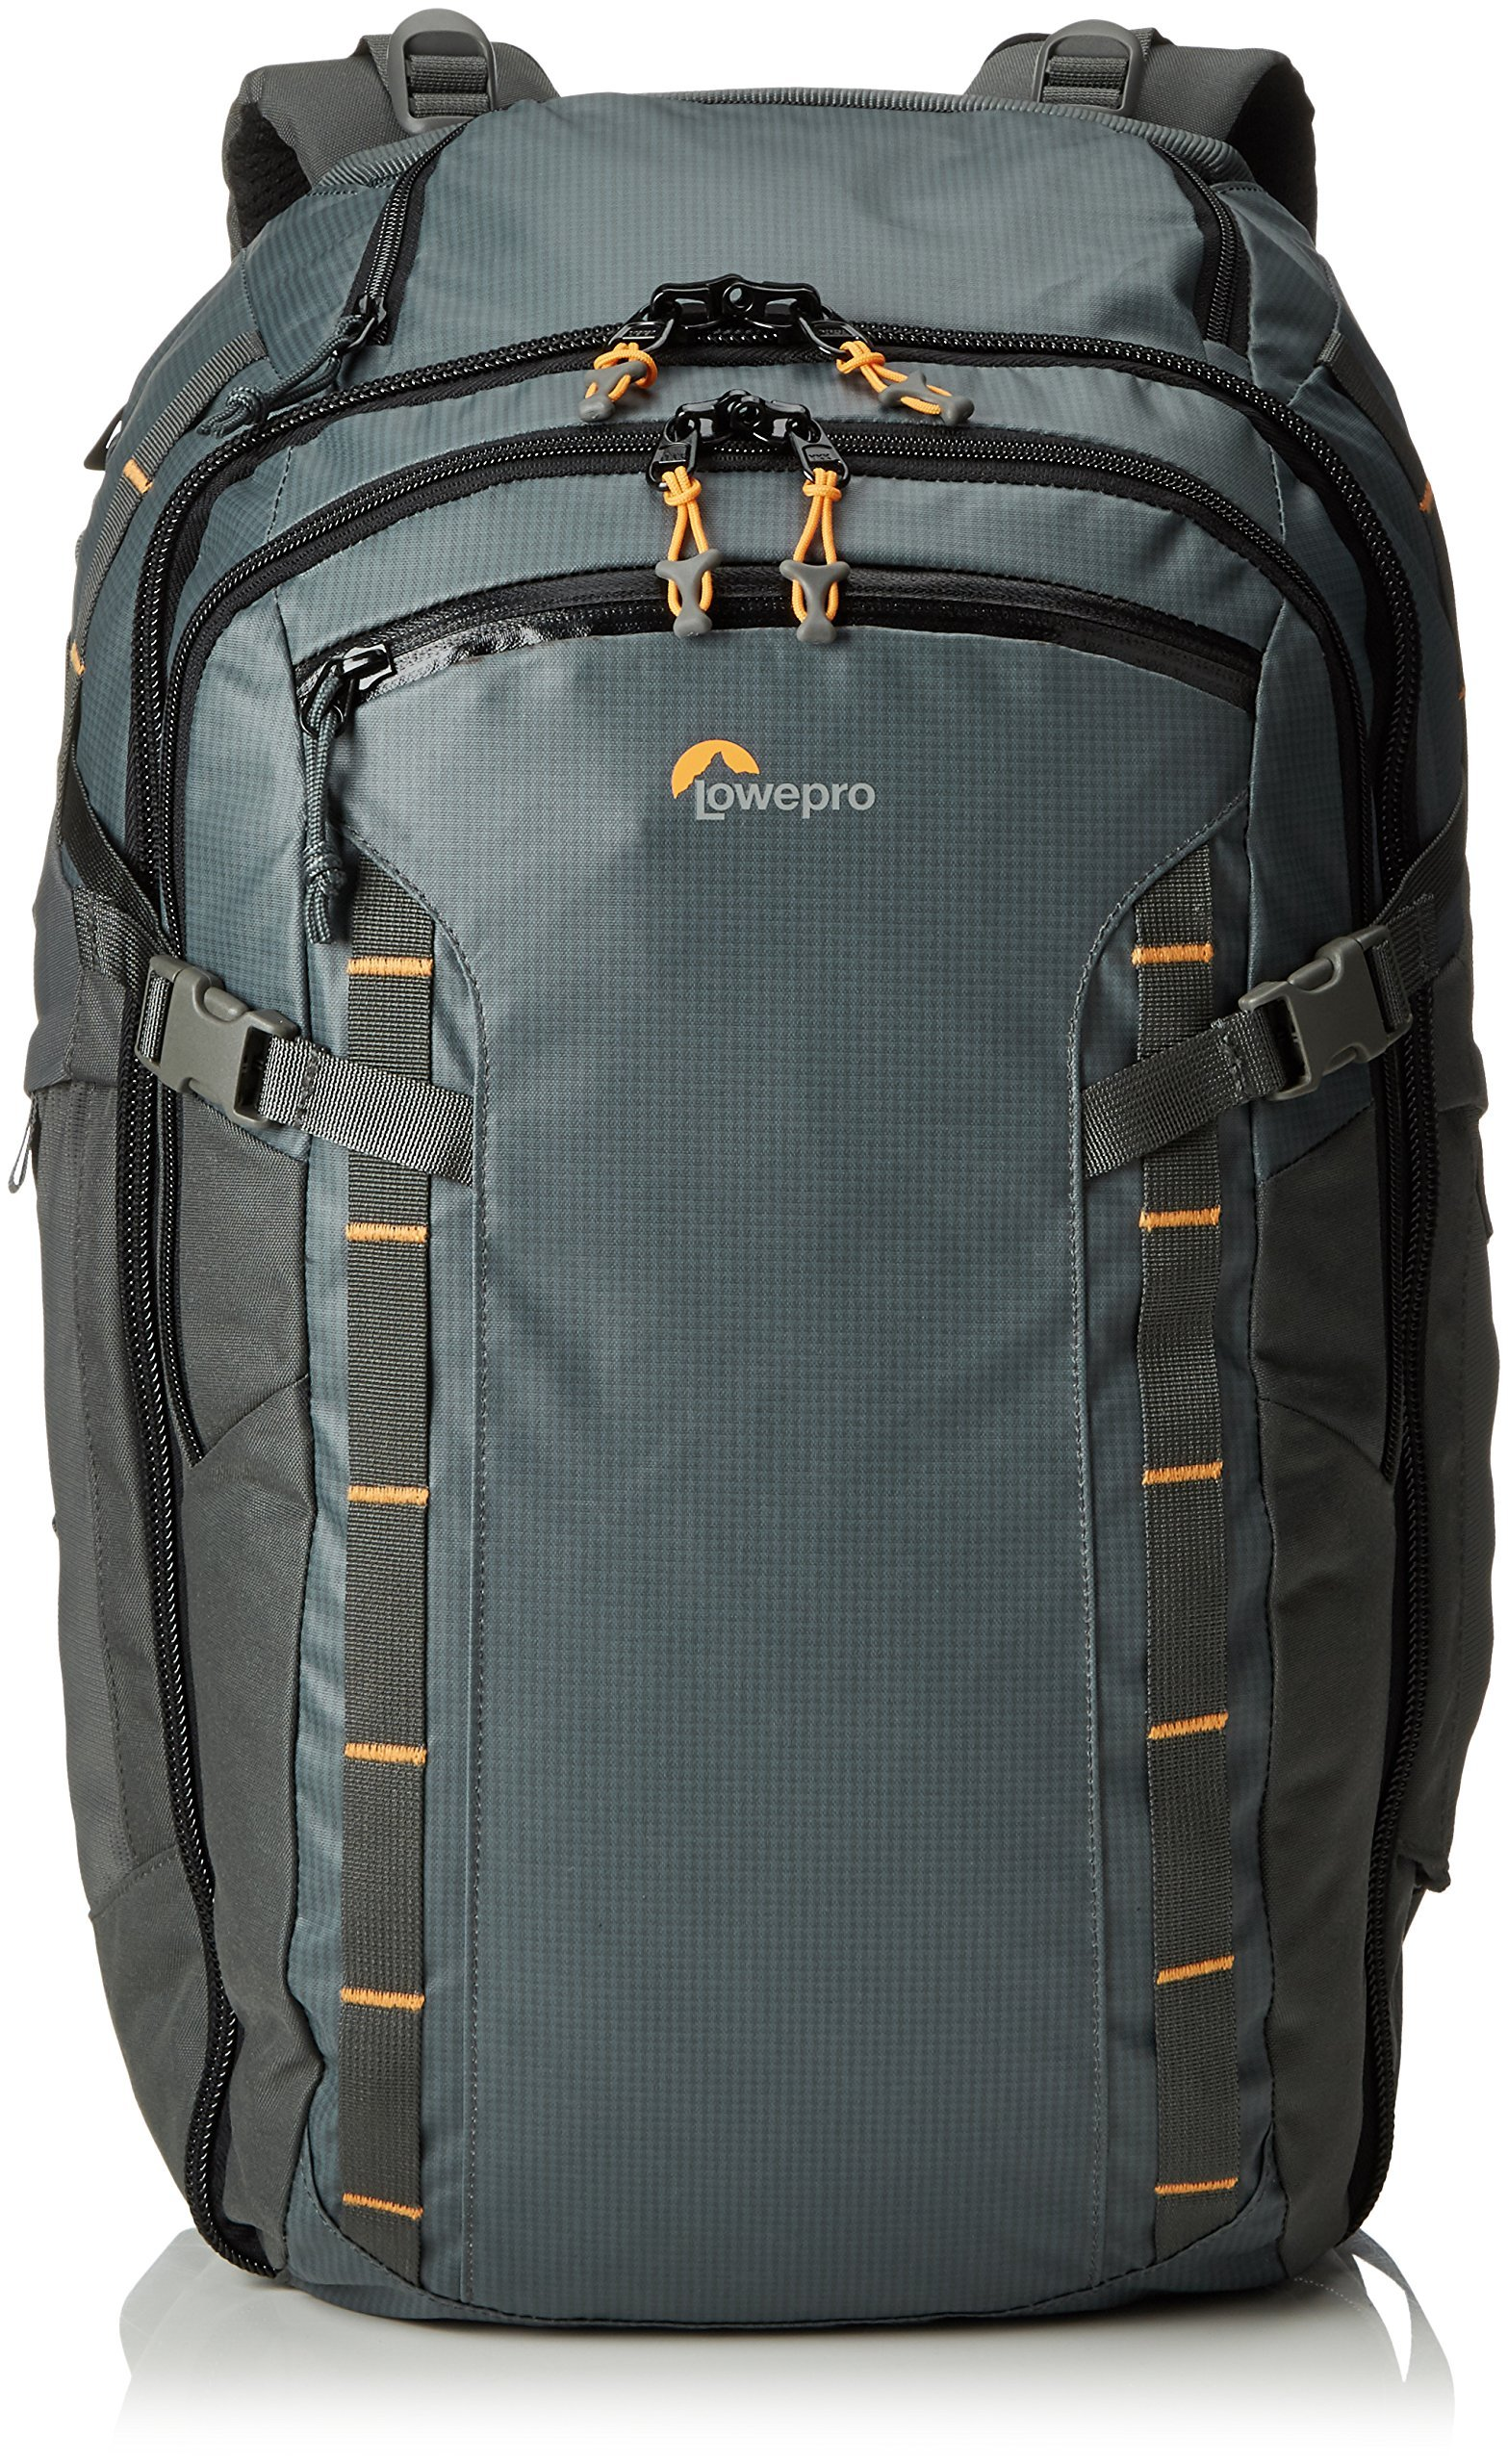 Lowepro HighLine BP 400 AW - Weatherproof & rugged 36-liter daypack for adventurous travelers who carry modern devices into any location by Lowepro